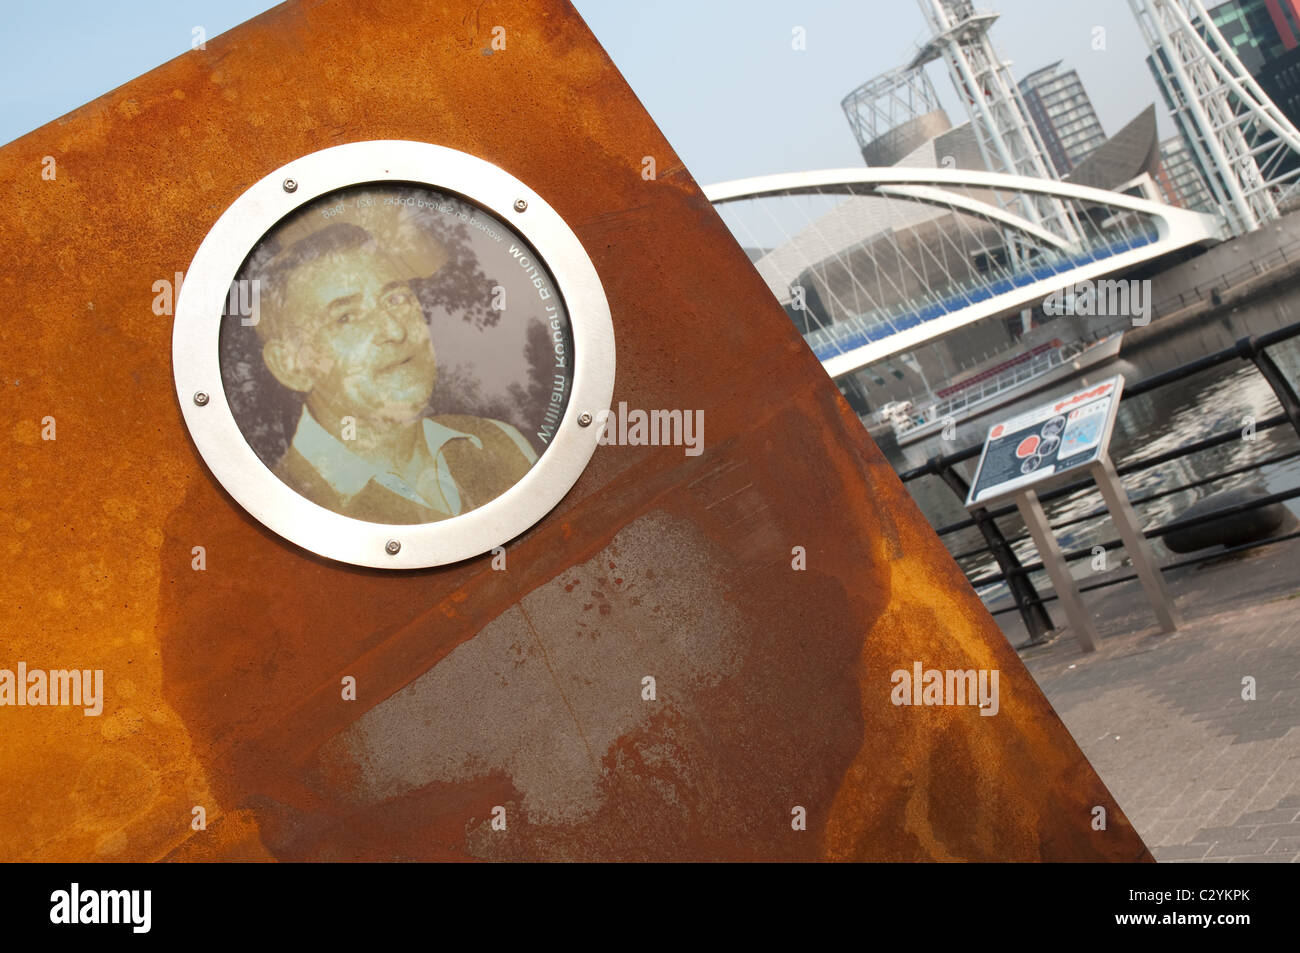 The 'Casuals' sculpture at Salford Quays.The portrait inserts are of workers at the former port. - Stock Image